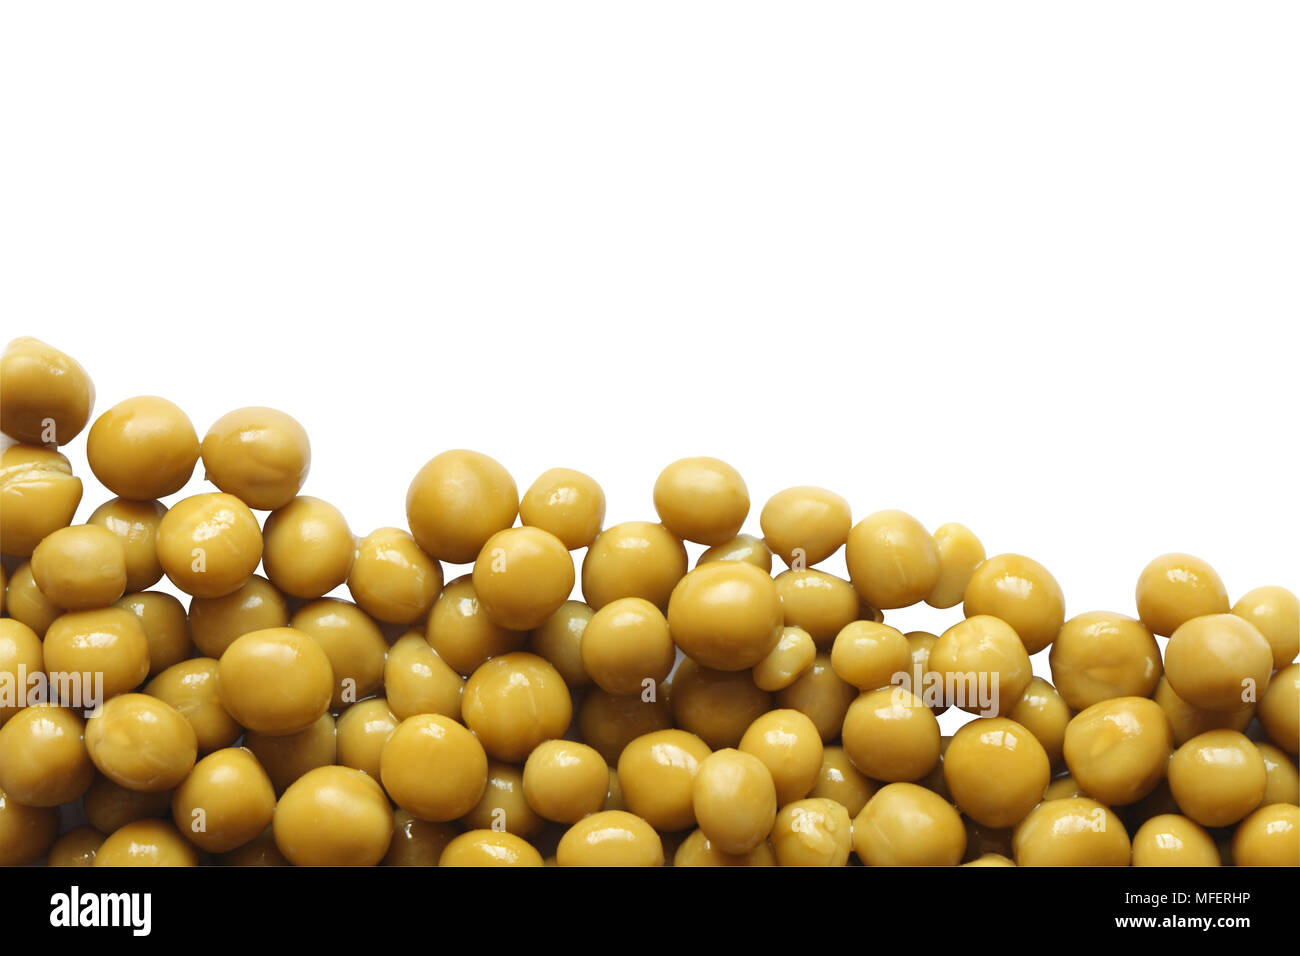 Preserved green peas isolated on white background with clipping path - Stock Image